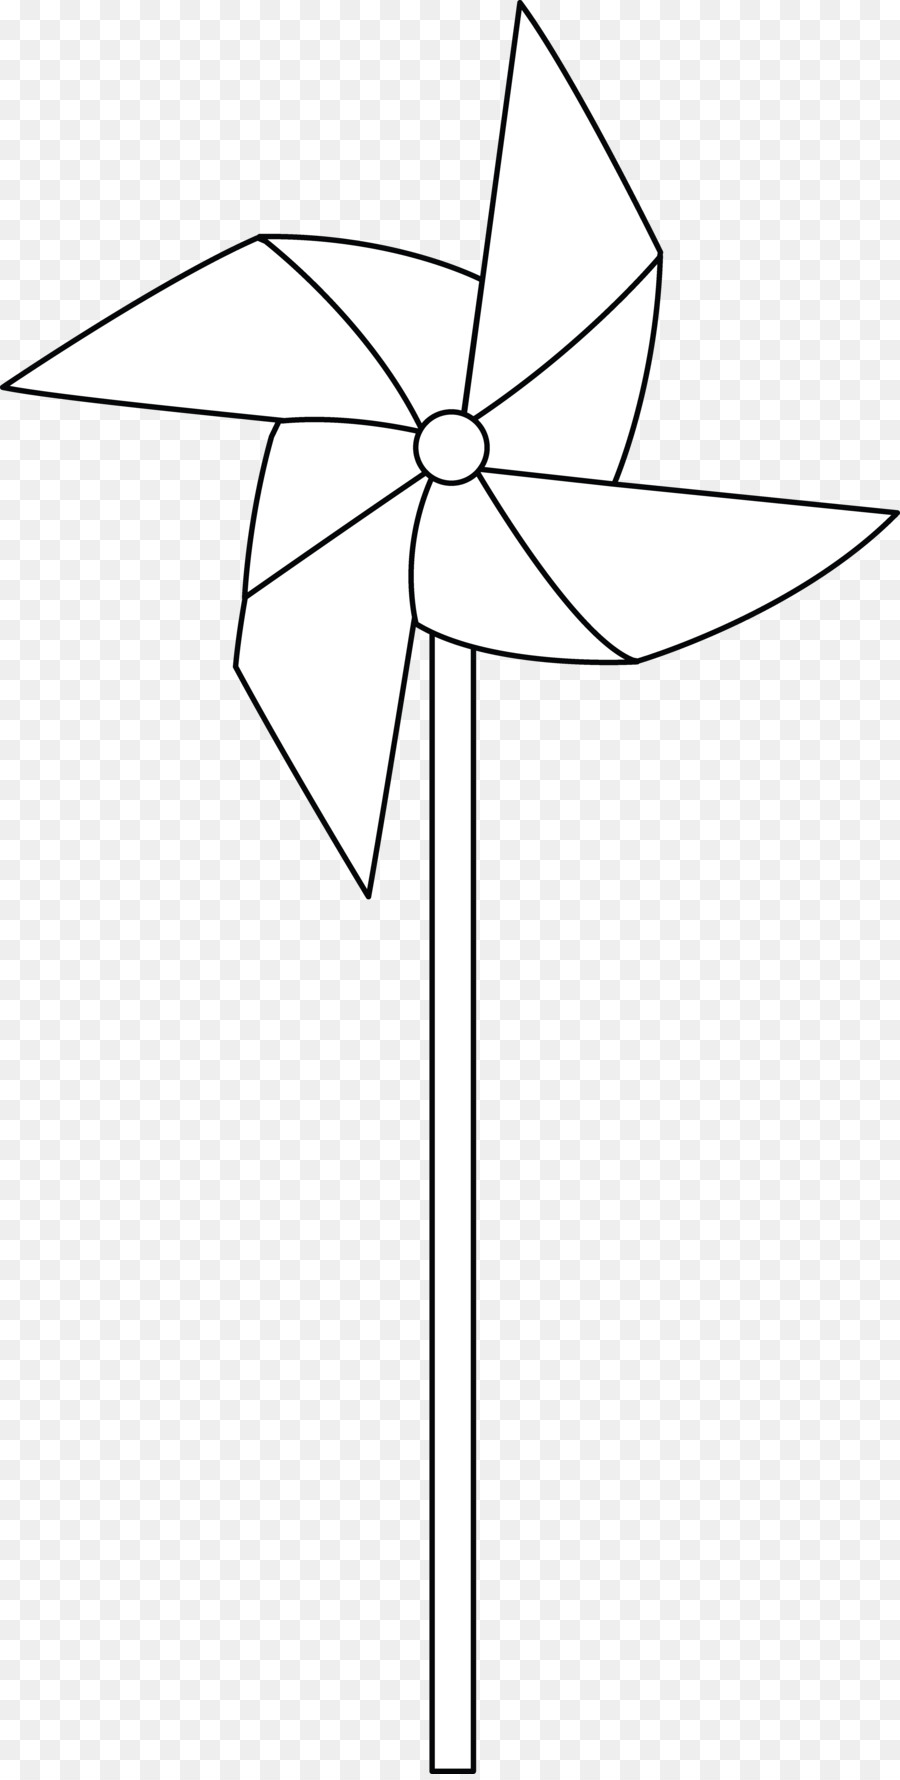 Leaf Drawing clipart.